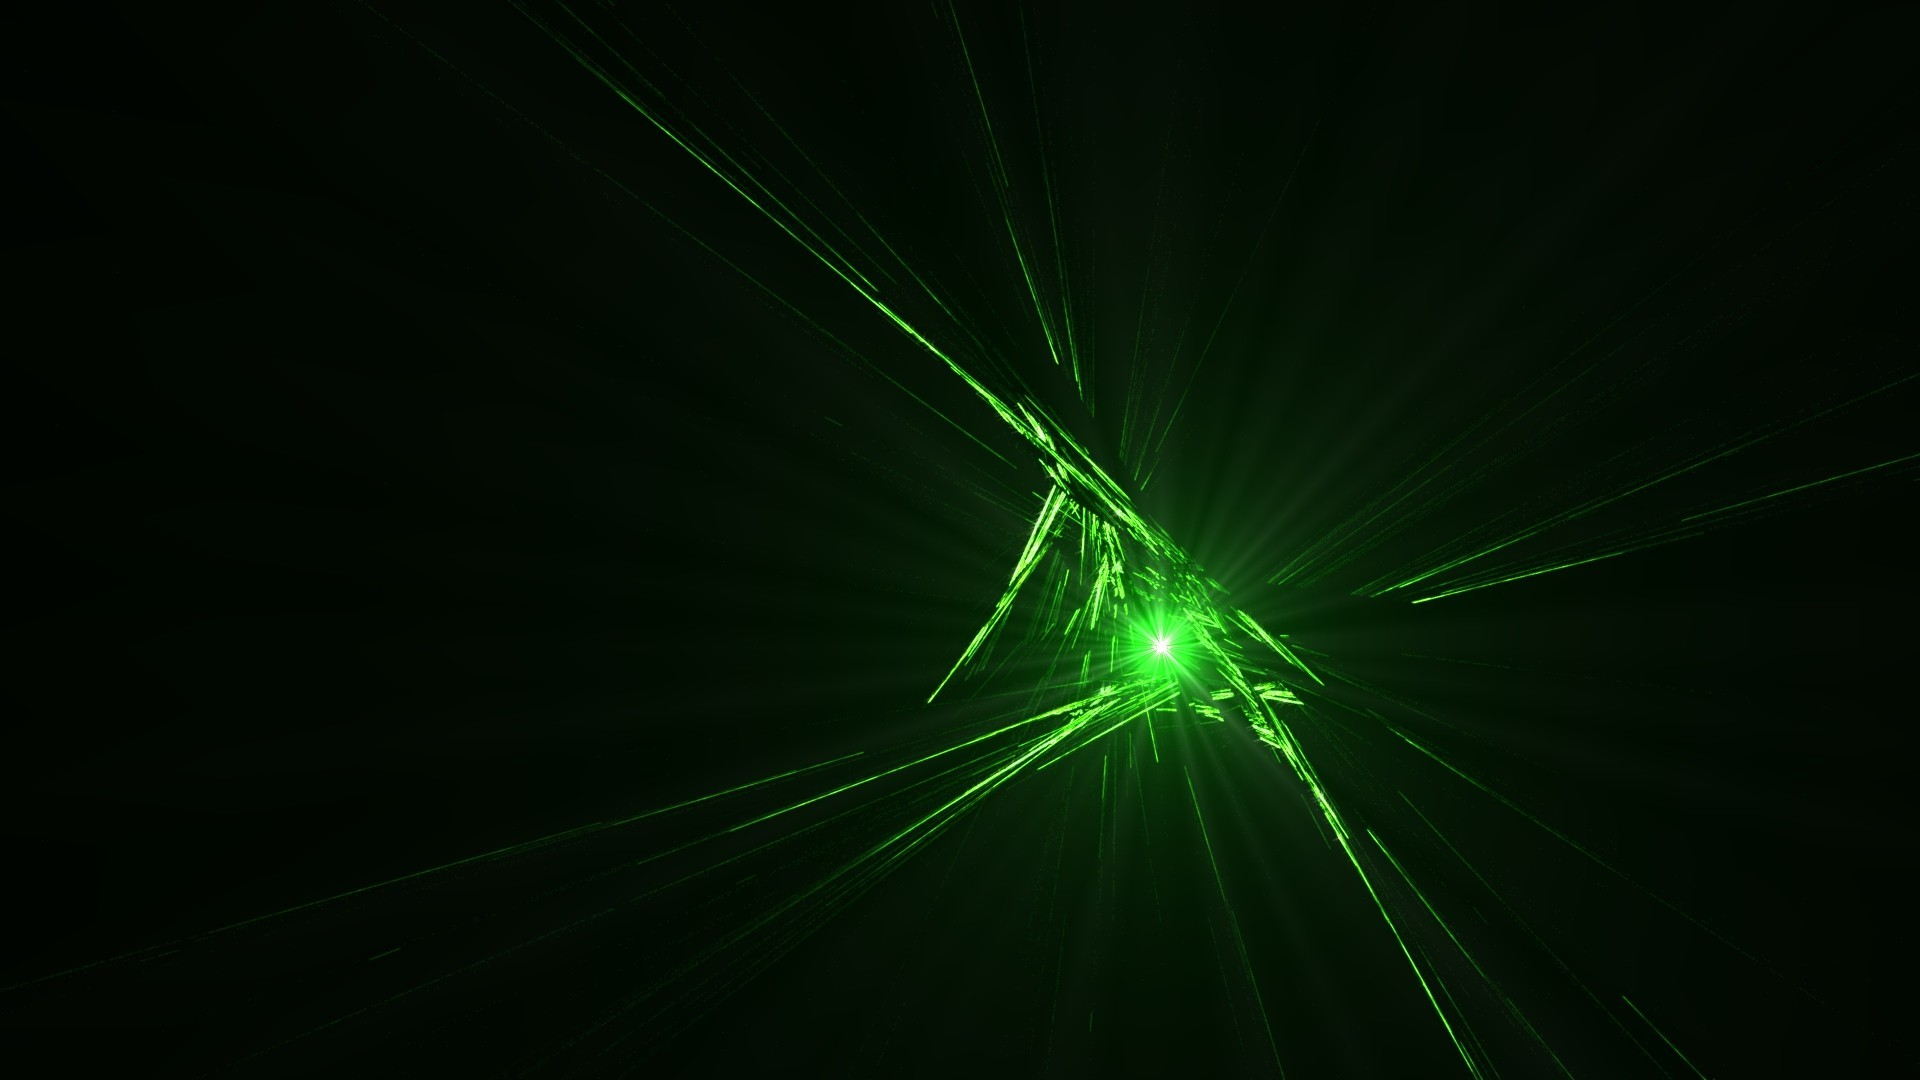 1920x1080 abstract, CGI, Green, Black, Beam Wallpapers HD / Desktop and Mobile  Backgrounds